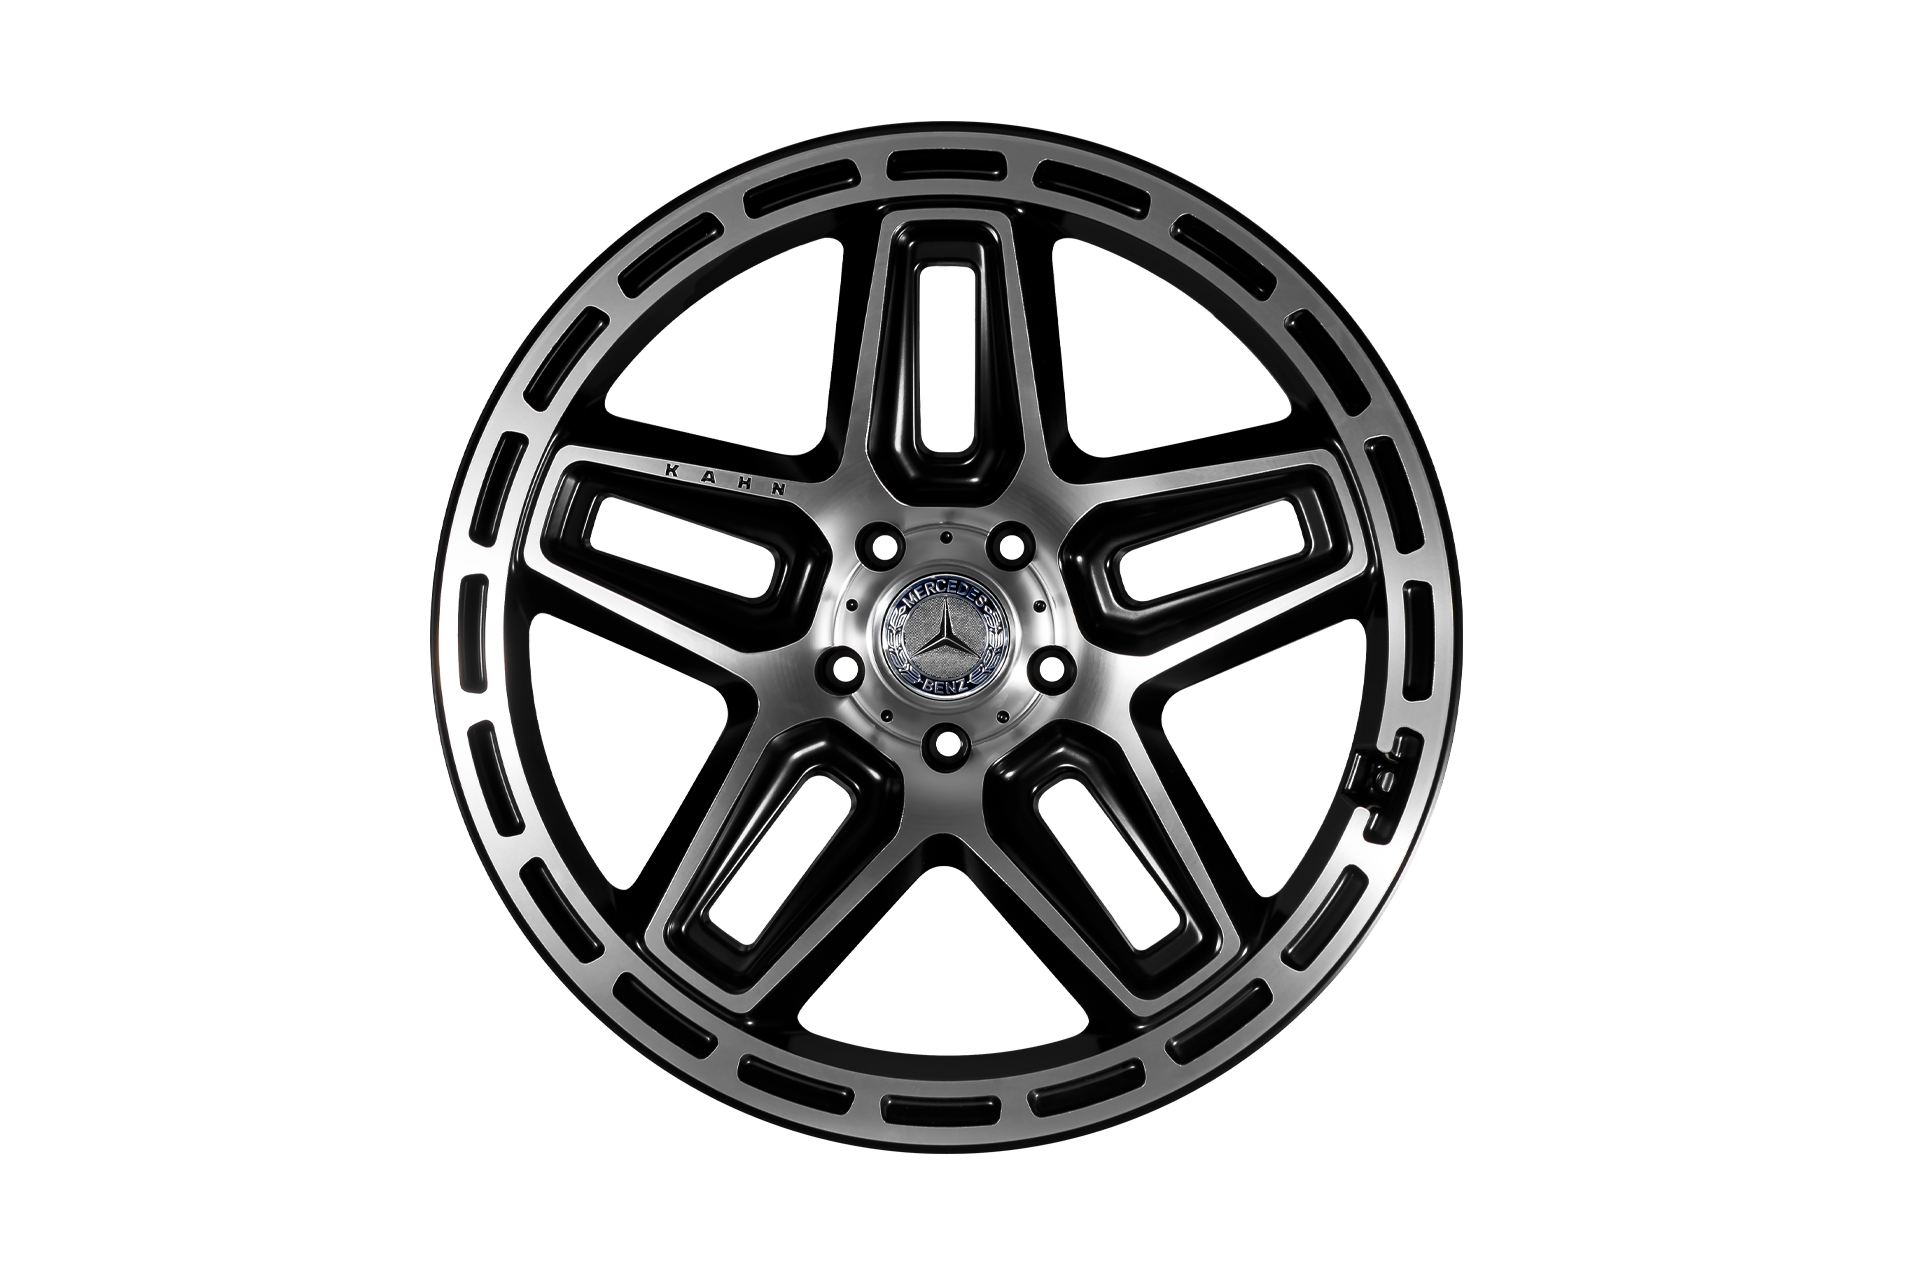 Mercedes G Wagon (1990-2018) Amg Only G06 Light Alloy Wheels Image 4775